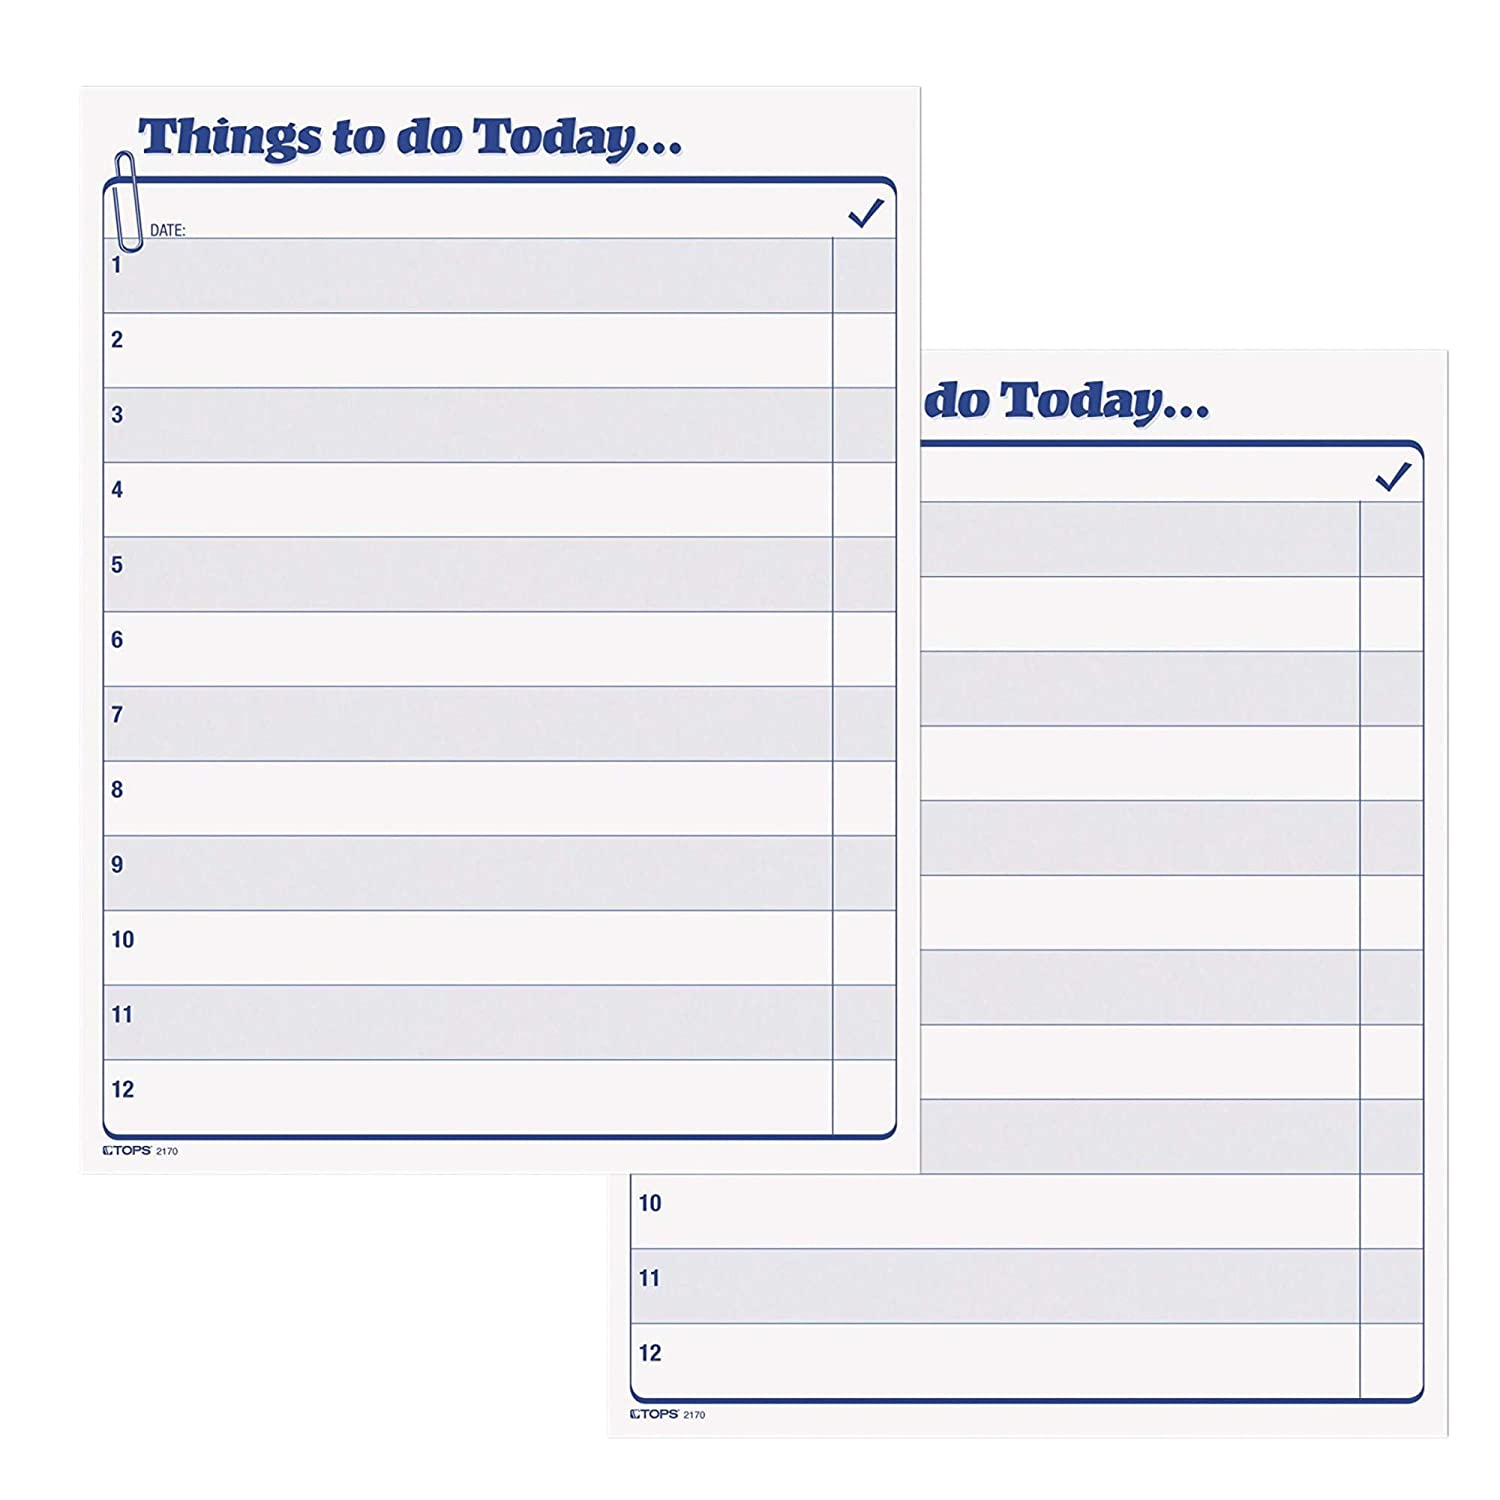 TOPS Daily Agenda Things to Do Today Pad, 8.5 x 11 Inches, 100-Sheet Pad (2170)